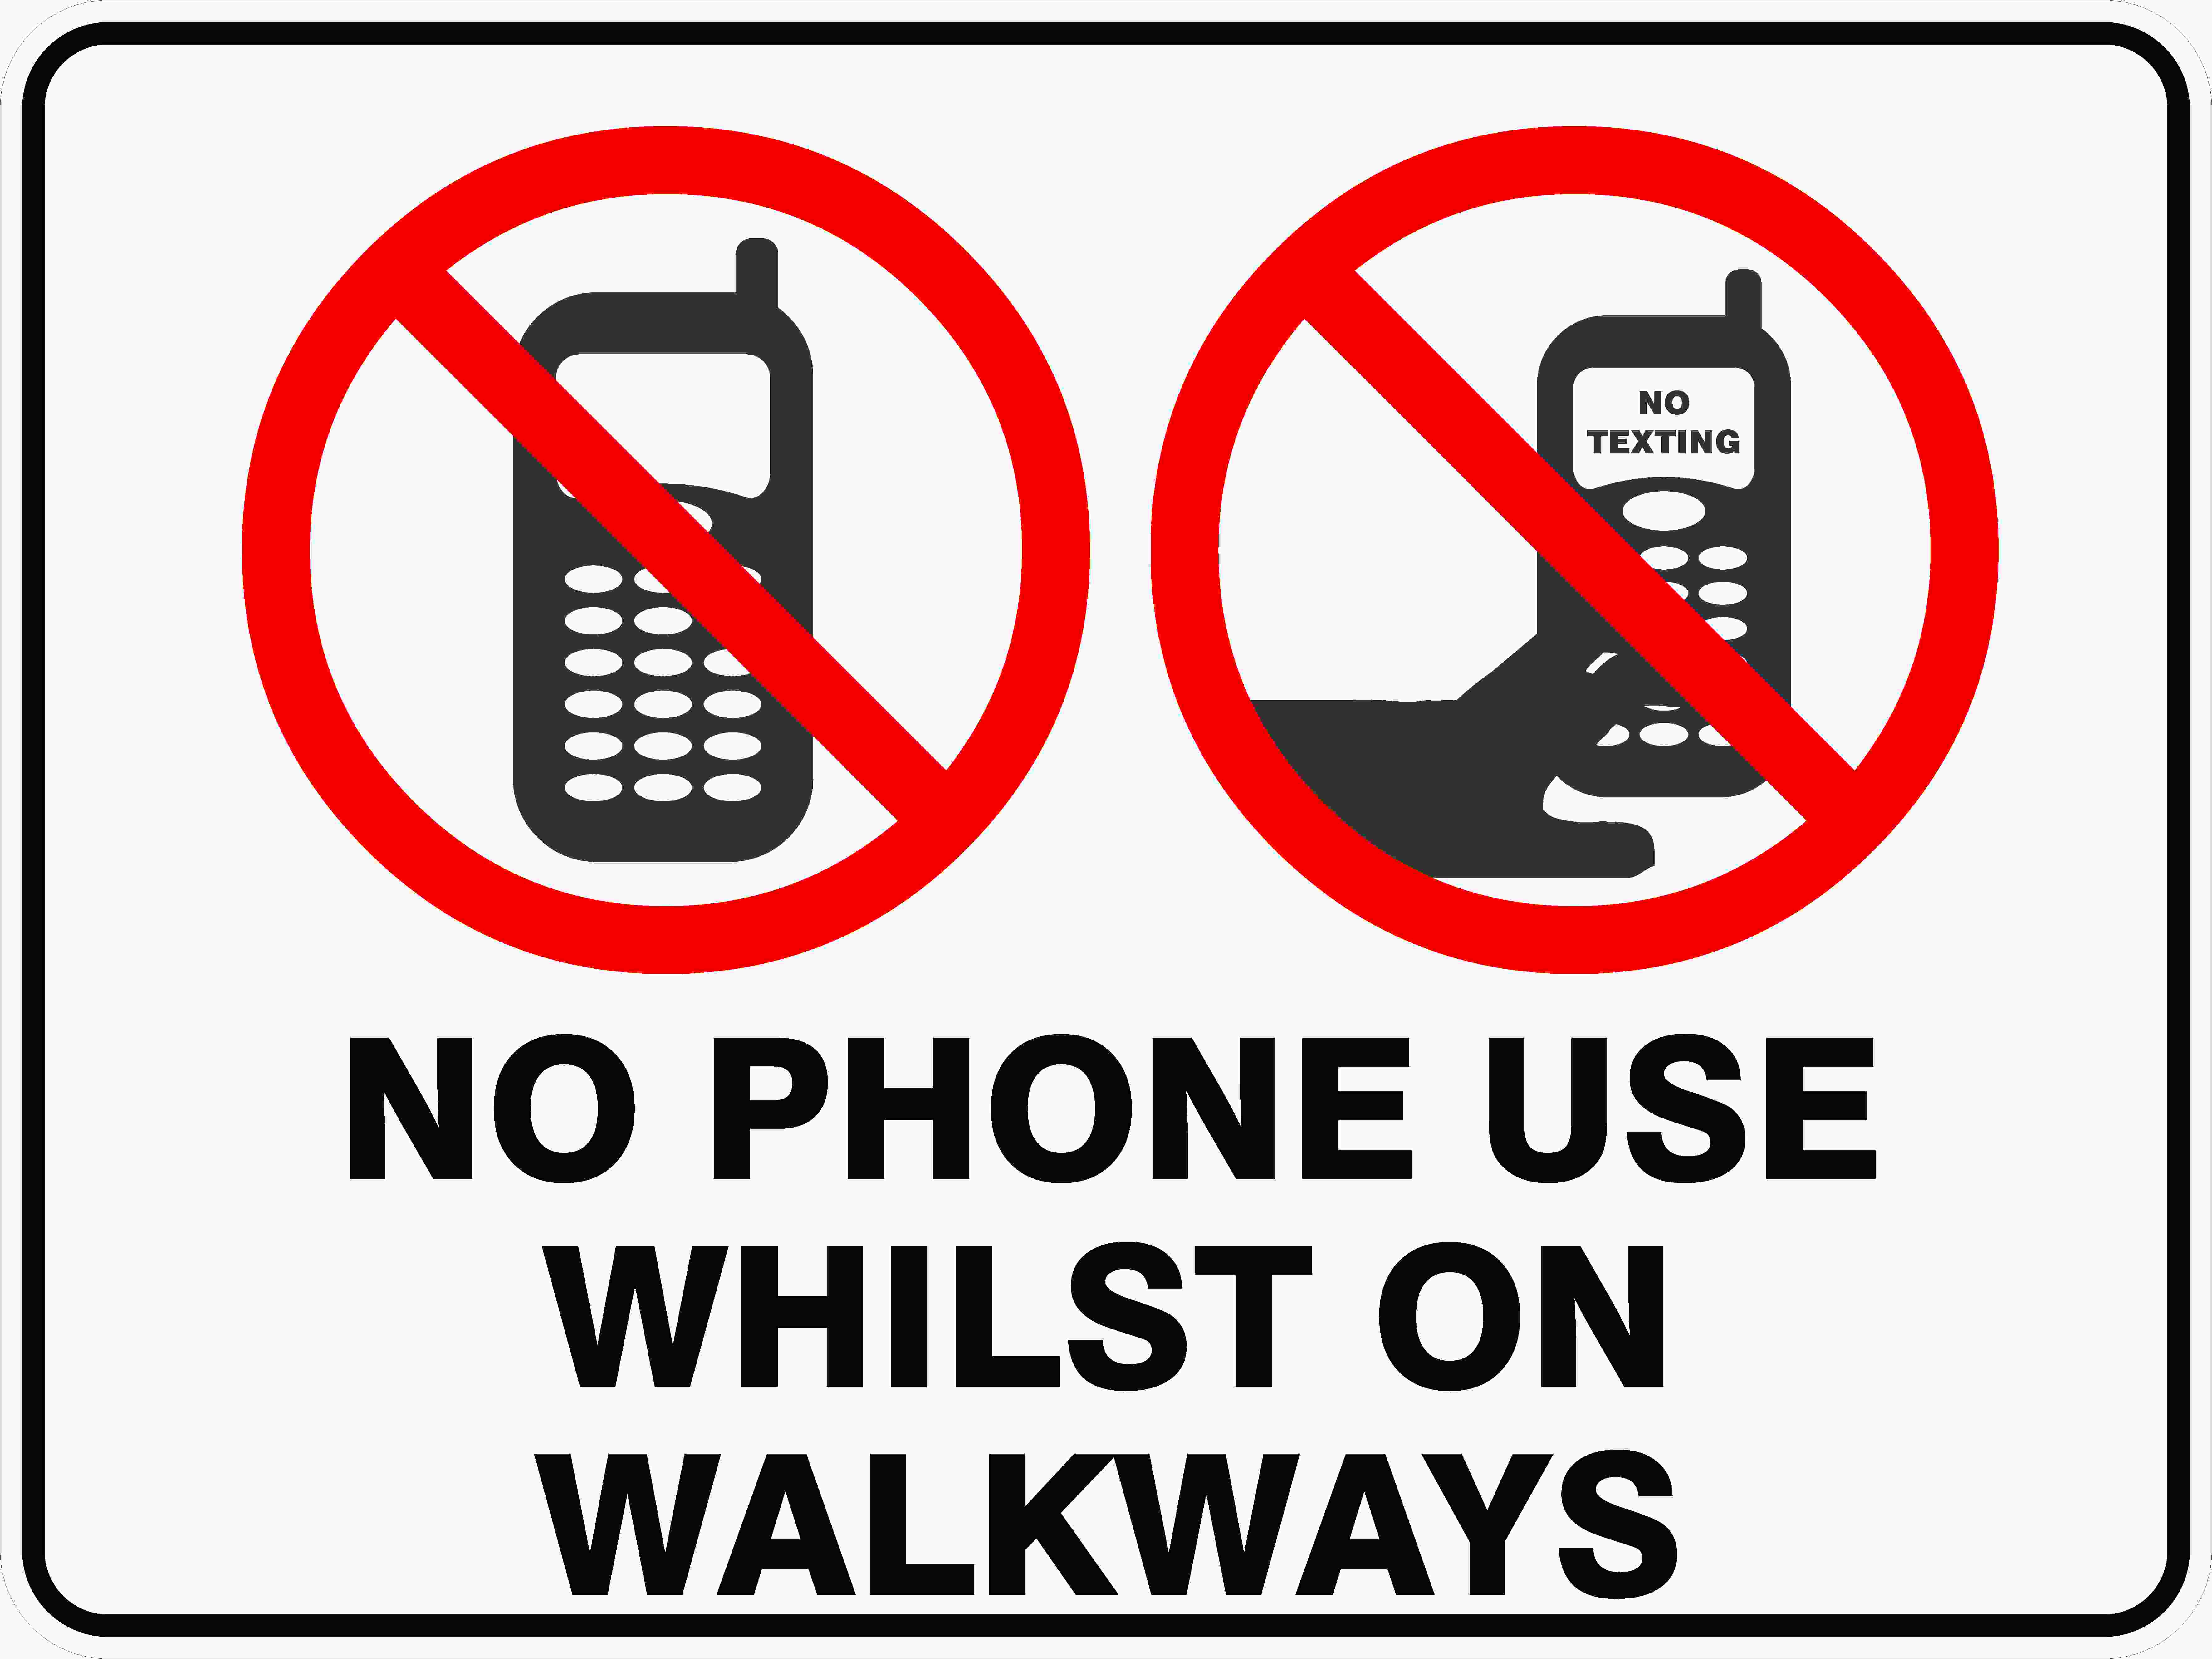 Prohibition Signs NO PHONE USE WHILST ON WALKWAYS